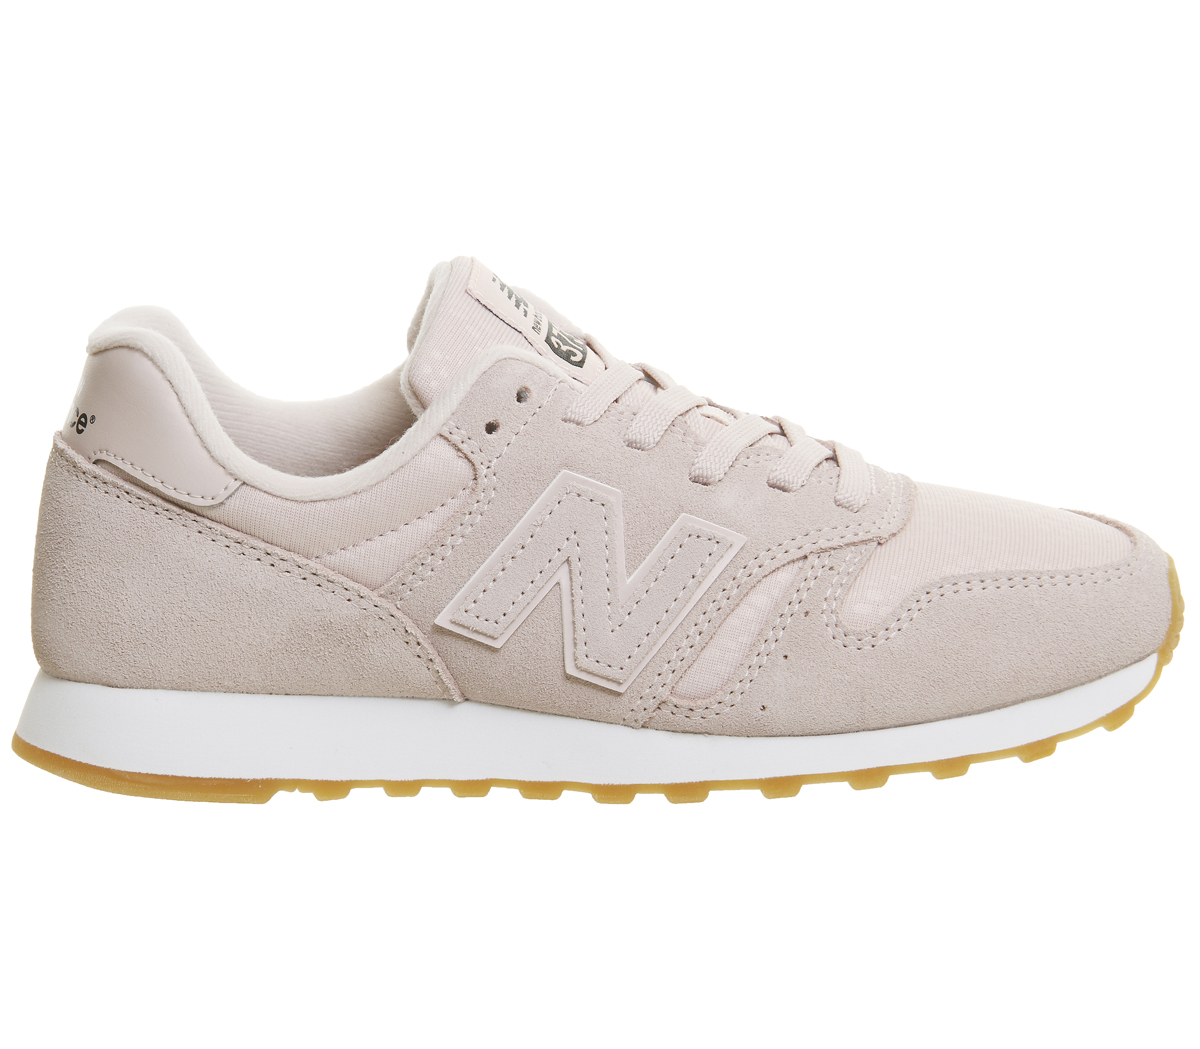 new balance 373 trainers uk 4.5